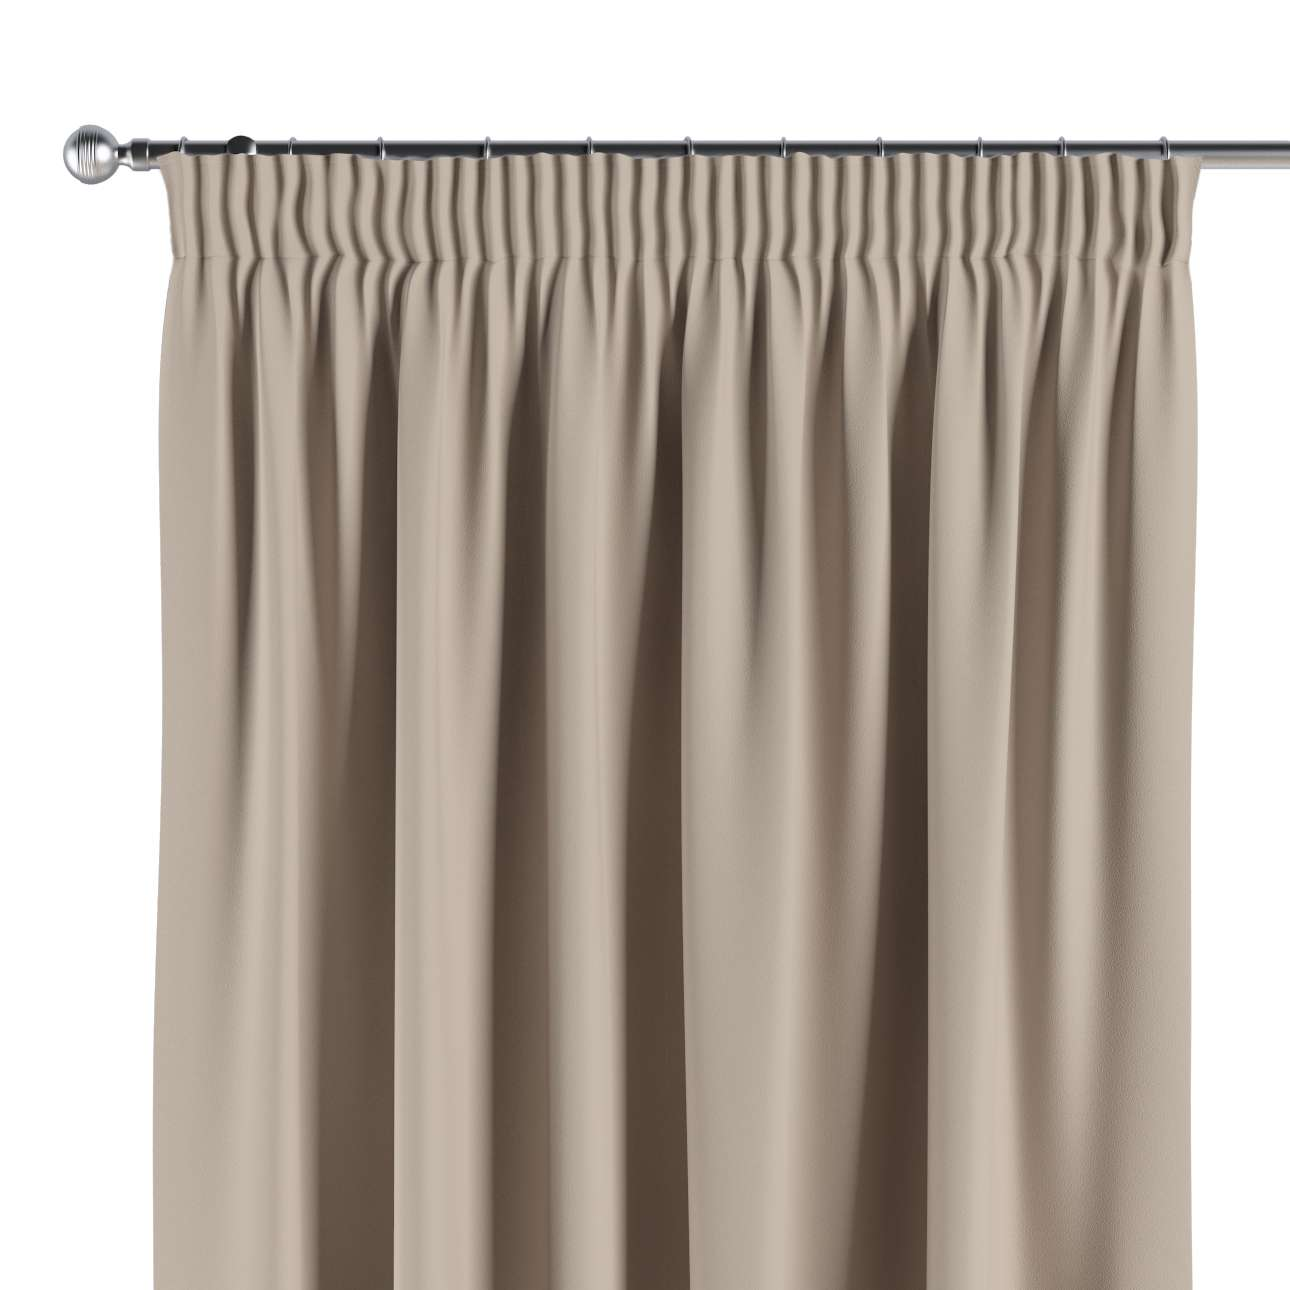 How To Measure Fabric For Pleated Curtains Curtain Menzilperde Net